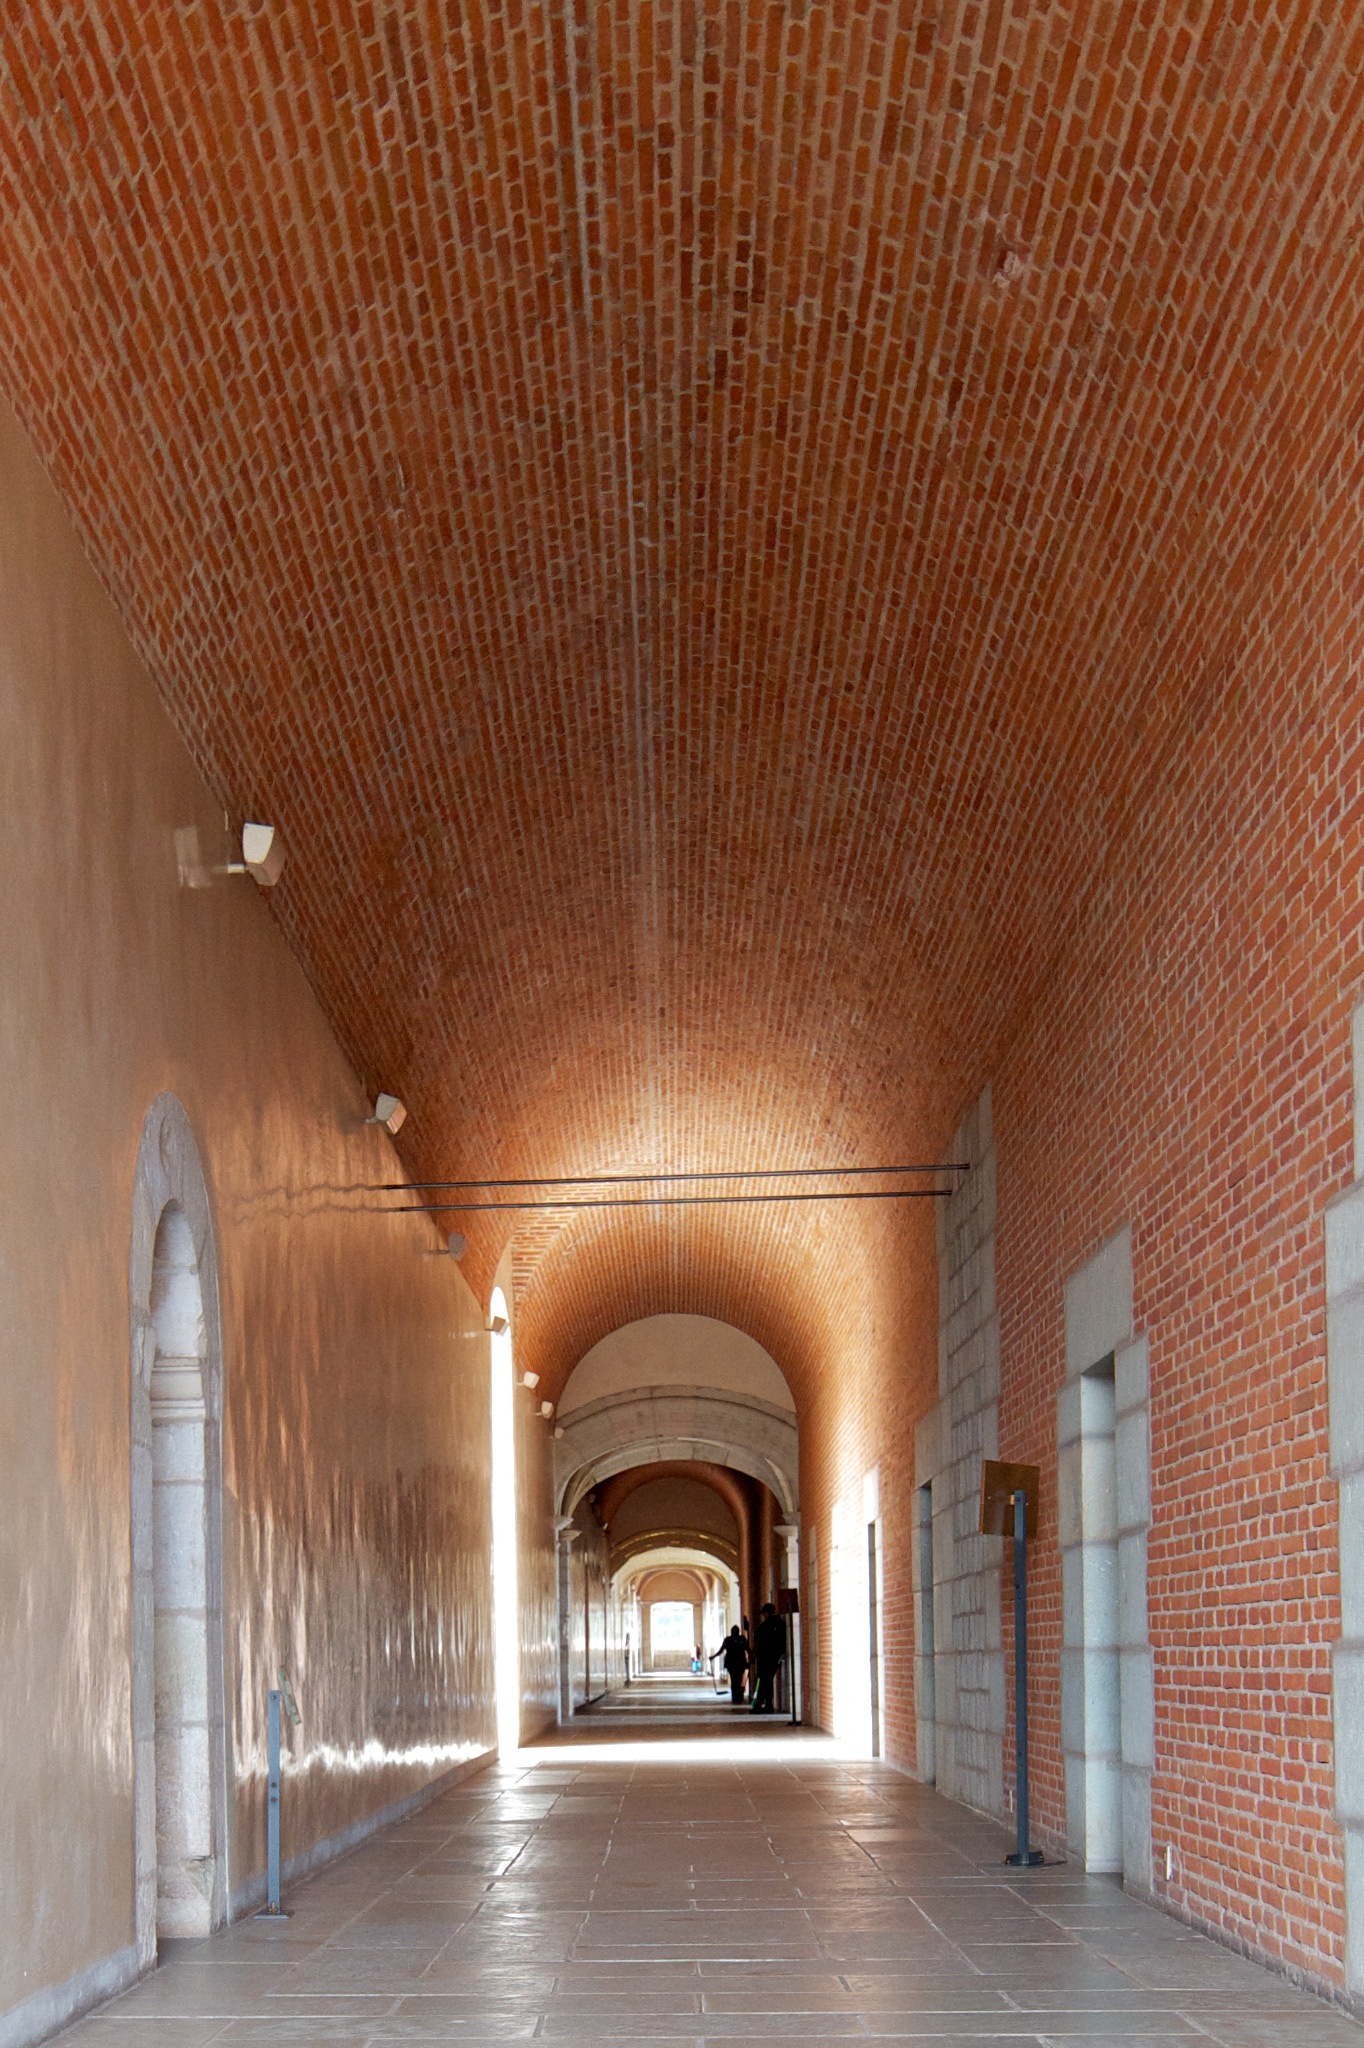 Exposed brickwork shows barrel vault construction techniques